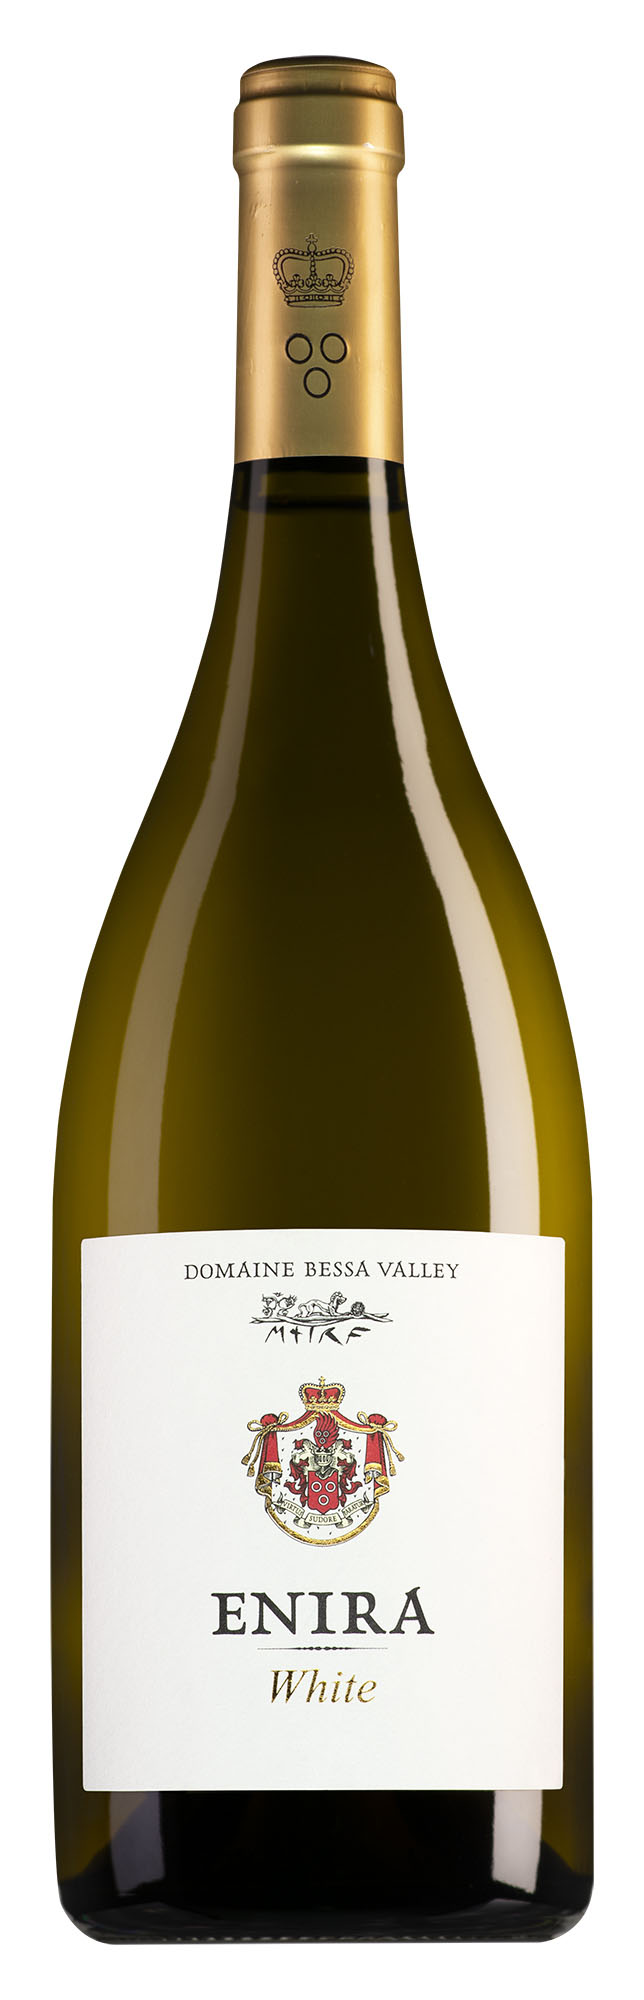 Domaine Bessa Valley Enira White